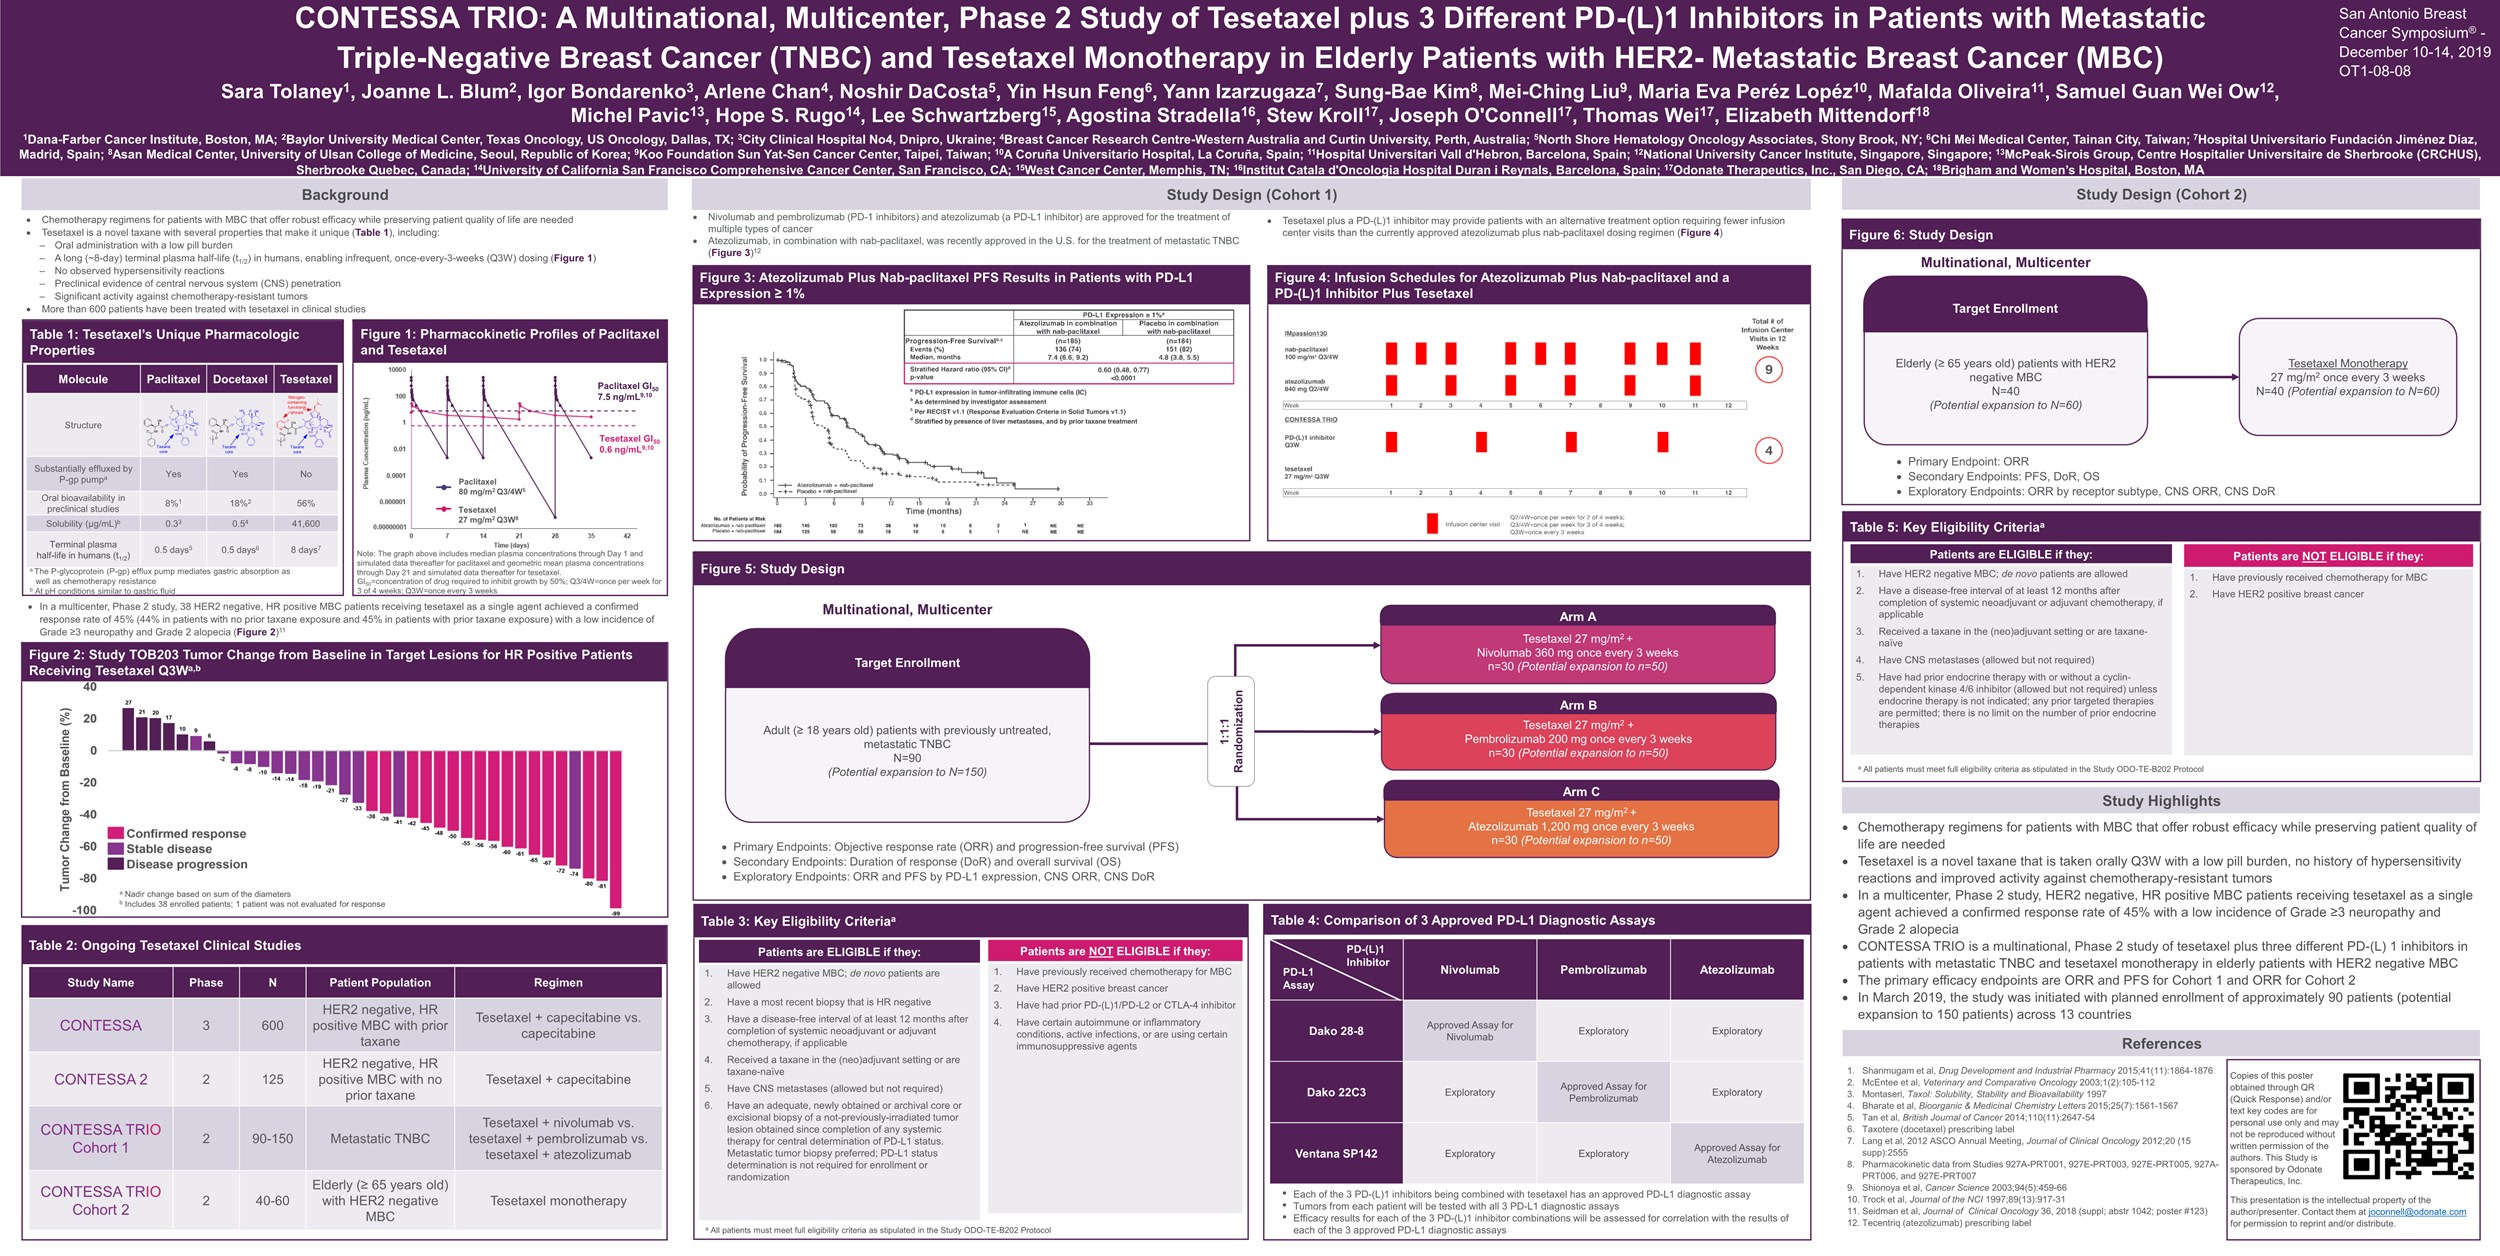 CONTESSA TRIO: A multinational, multicenter, phase 2 study of tesetaxel plus 3 different PD-(L)1 inhibitors in patients with metastatic triple-negative breast cancer (TNBC) and tesetaxel monotherapy in elderly patients with HER2- metastatic breast cancer (MBC)